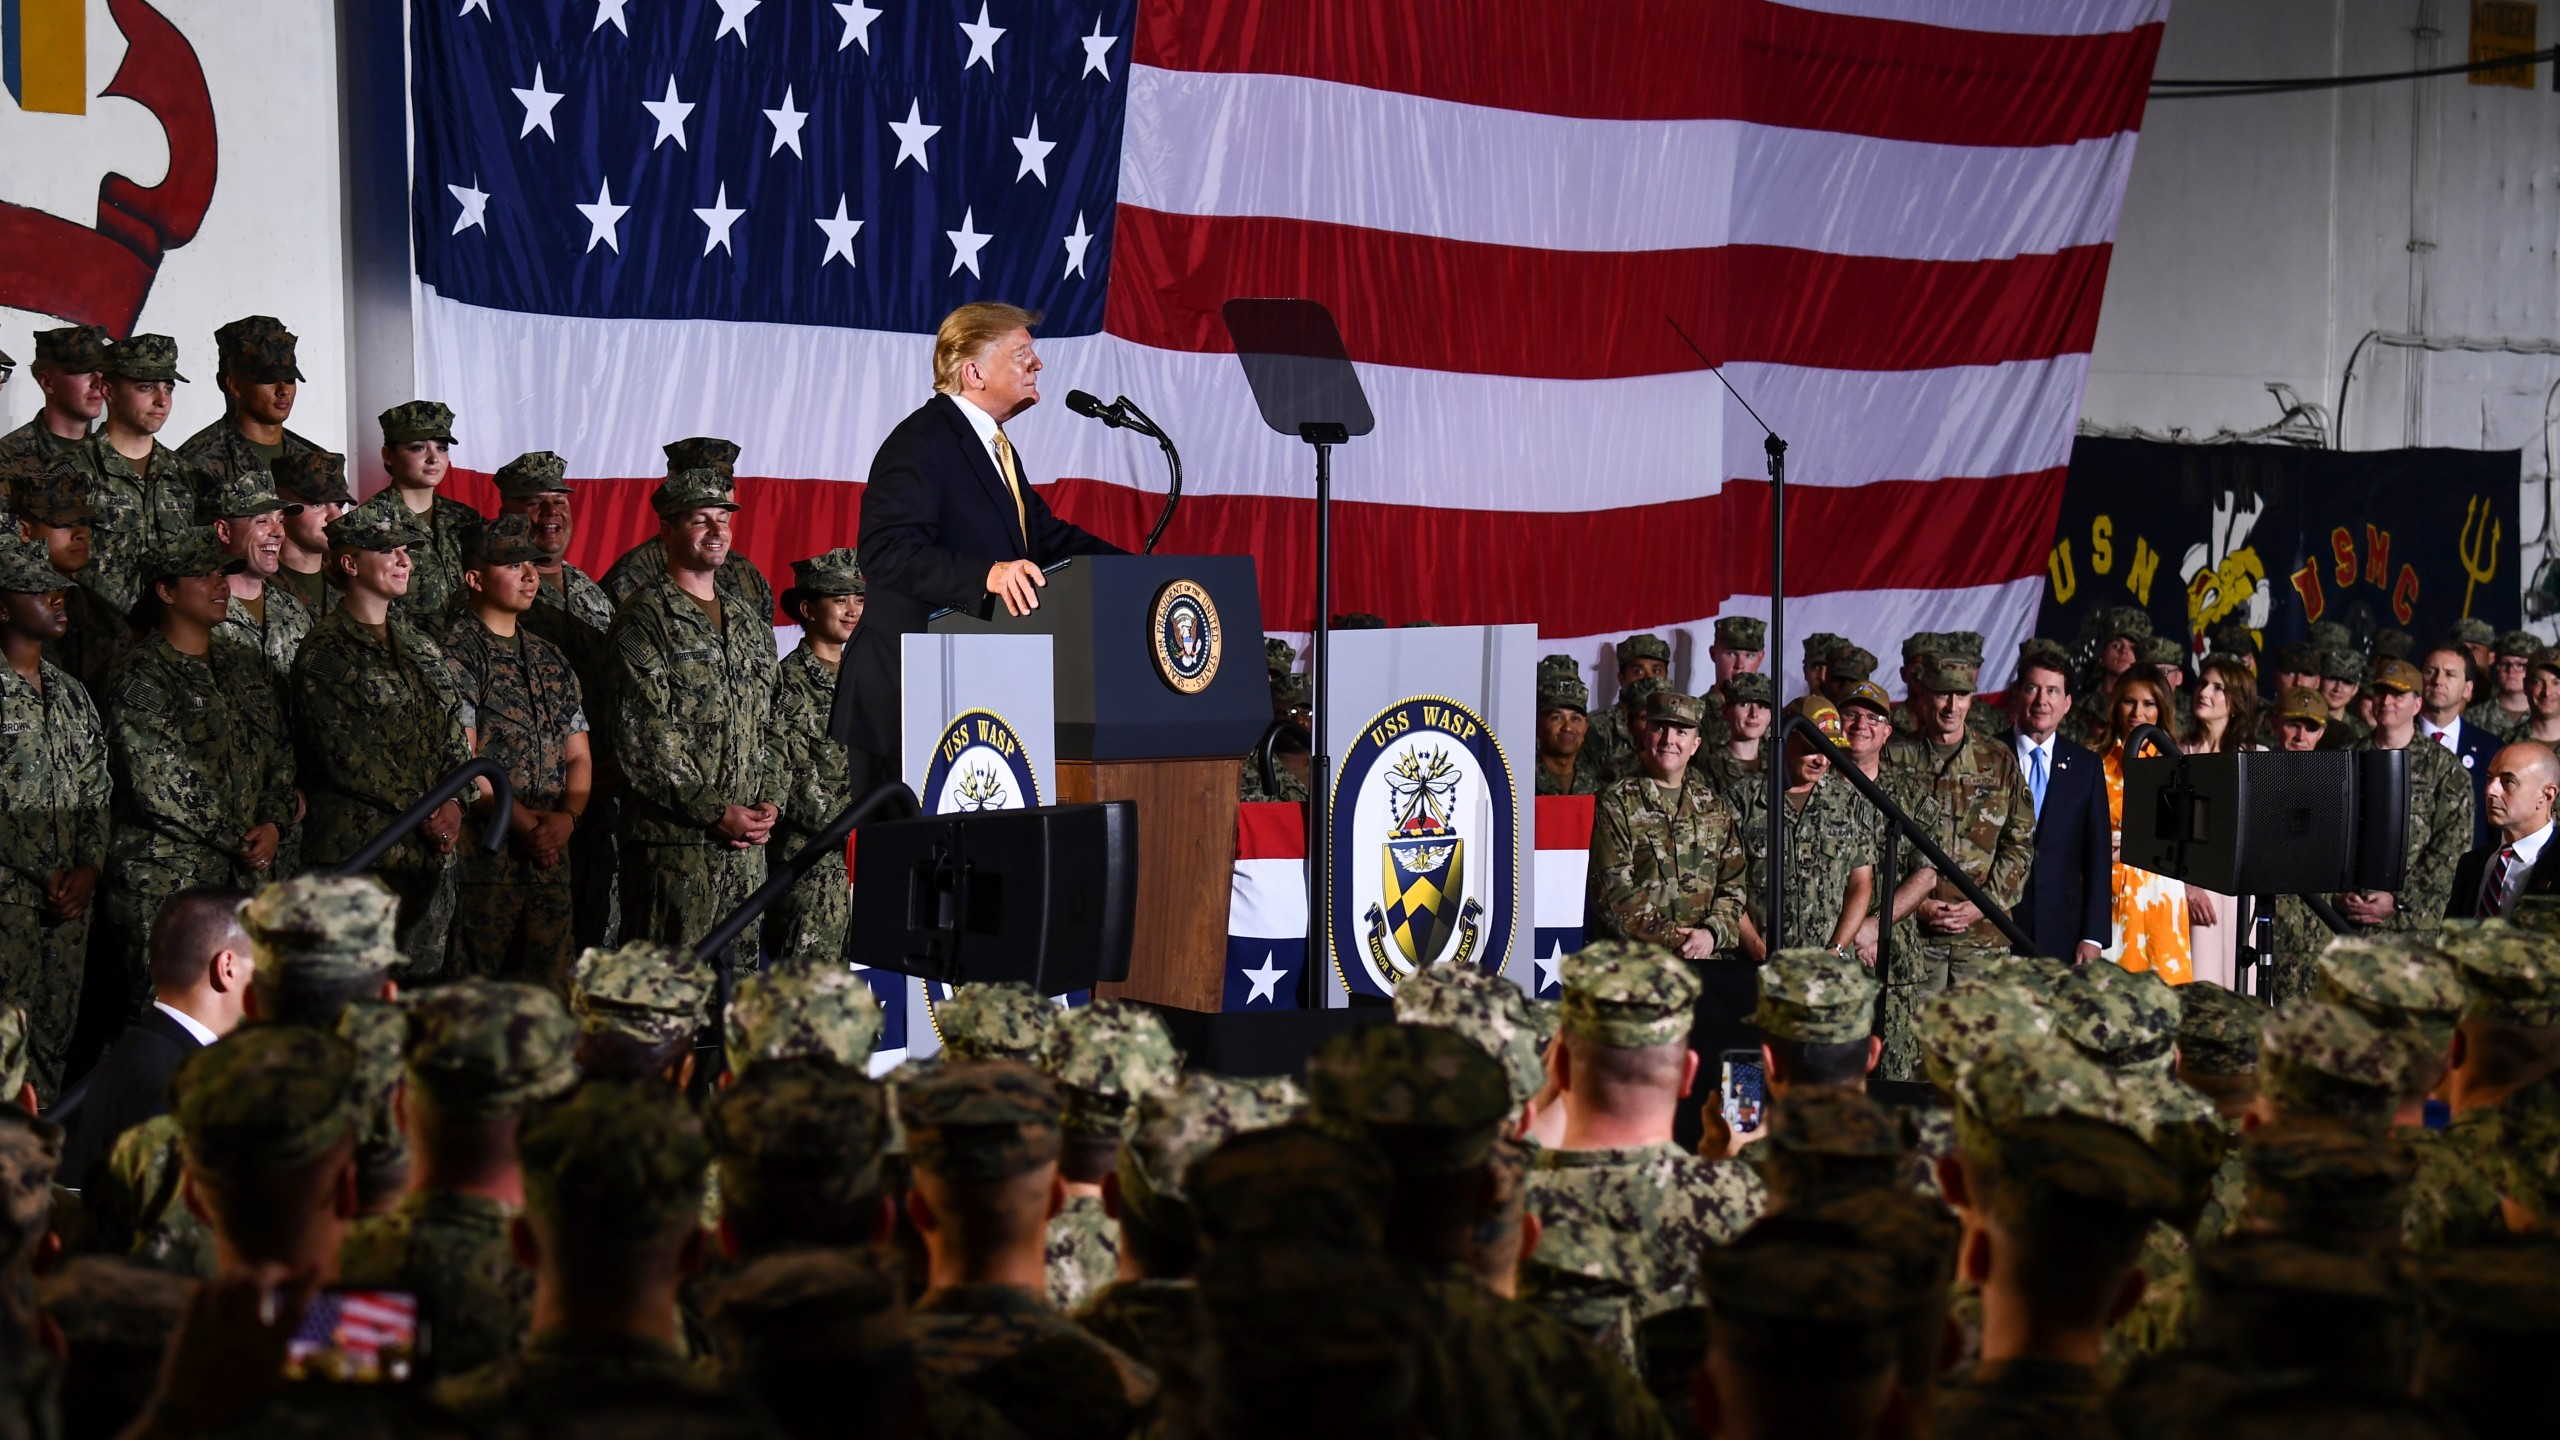 President Donald Trump speaks during a Memorial Day event aboard the amphibious assault ship USS Wasp in Yokosuka, Japan, on May 28, 2019. (Credit: Brendan Smialowski / AFP / Getty Images)